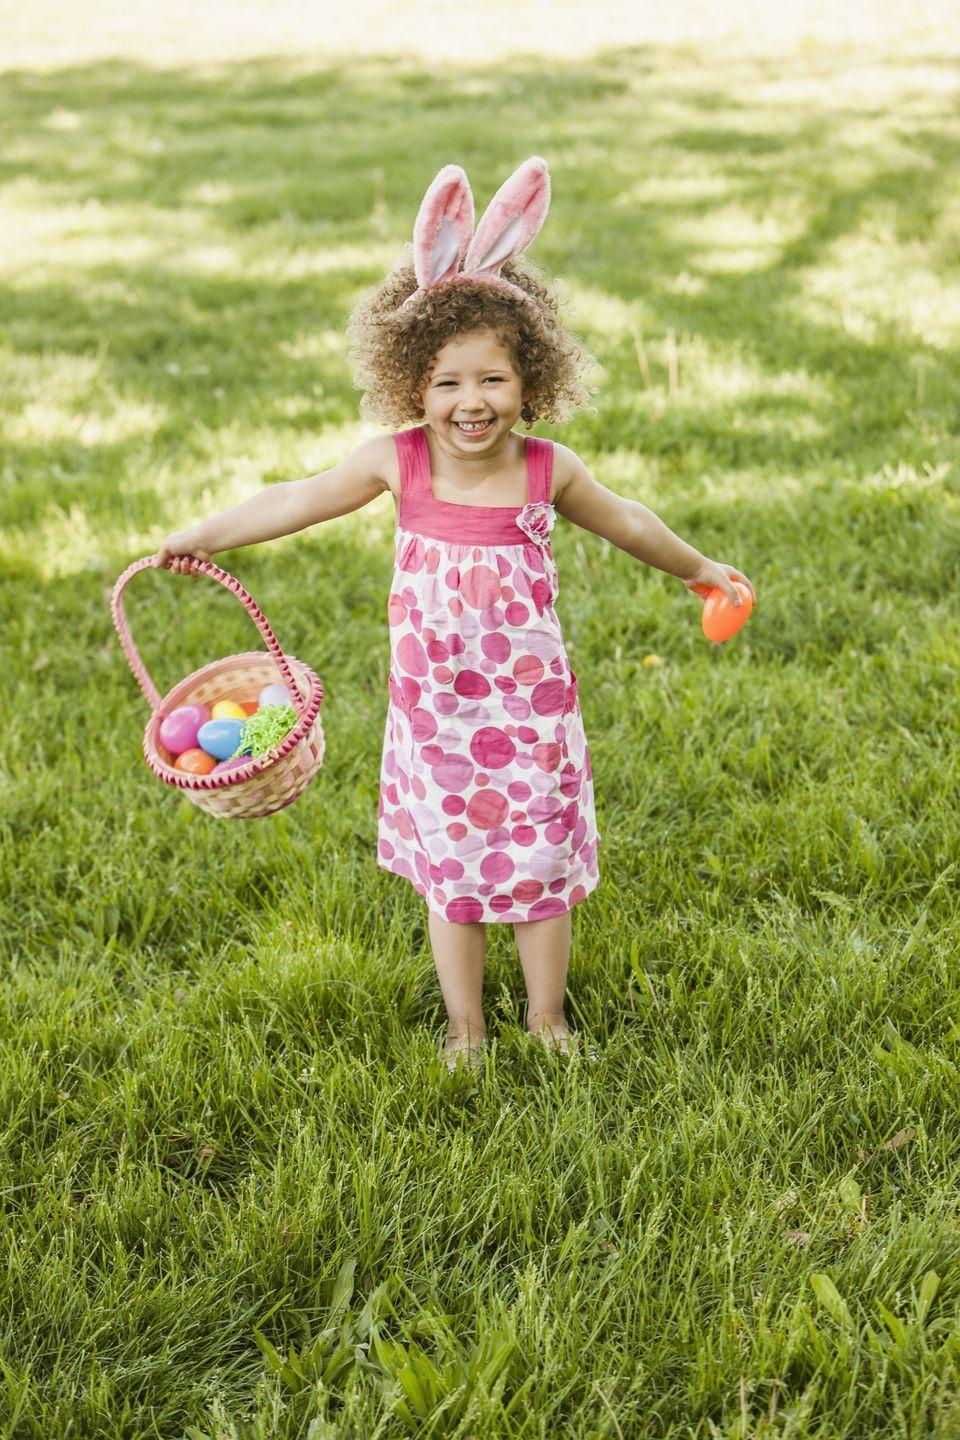 """<p>The first egg hunt can be traced back to <a href=""""https://www.cbsnews.com/news/happy-easter-whats-with-the-bunny-and-the-eggs/"""" rel=""""nofollow noopener"""" target=""""_blank"""" data-ylk=""""slk:Martin Luther"""" class=""""link rapid-noclick-resp"""">Martin Luther</a>, a central figure during the Protestant Reformation — men hid the eggs for women and children to find. The happy act of finding an Easter egg during the hunt is supposed to remind us of <a href=""""https://www.catholiccompany.com/getfed/mary-magdalene-first-easter-egg/"""" rel=""""nofollow noopener"""" target=""""_blank"""" data-ylk=""""slk:the joy that the women"""" class=""""link rapid-noclick-resp"""">the joy that the women</a> (believed to be Mary Magdalene, Mary mother of James, and Salome) felt when they came to Jesus's cave and found it empty.</p><p><strong>RELATED: </strong><a href=""""https://www.goodhousekeeping.com/holidays/easter-ideas/g4151/easter-egg-hunt-ideas/"""" rel=""""nofollow noopener"""" target=""""_blank"""" data-ylk=""""slk:Fun Easter Egg Hunt Ideas for the Whole Family"""" class=""""link rapid-noclick-resp"""">Fun Easter Egg Hunt Ideas for the Whole Family</a></p>"""